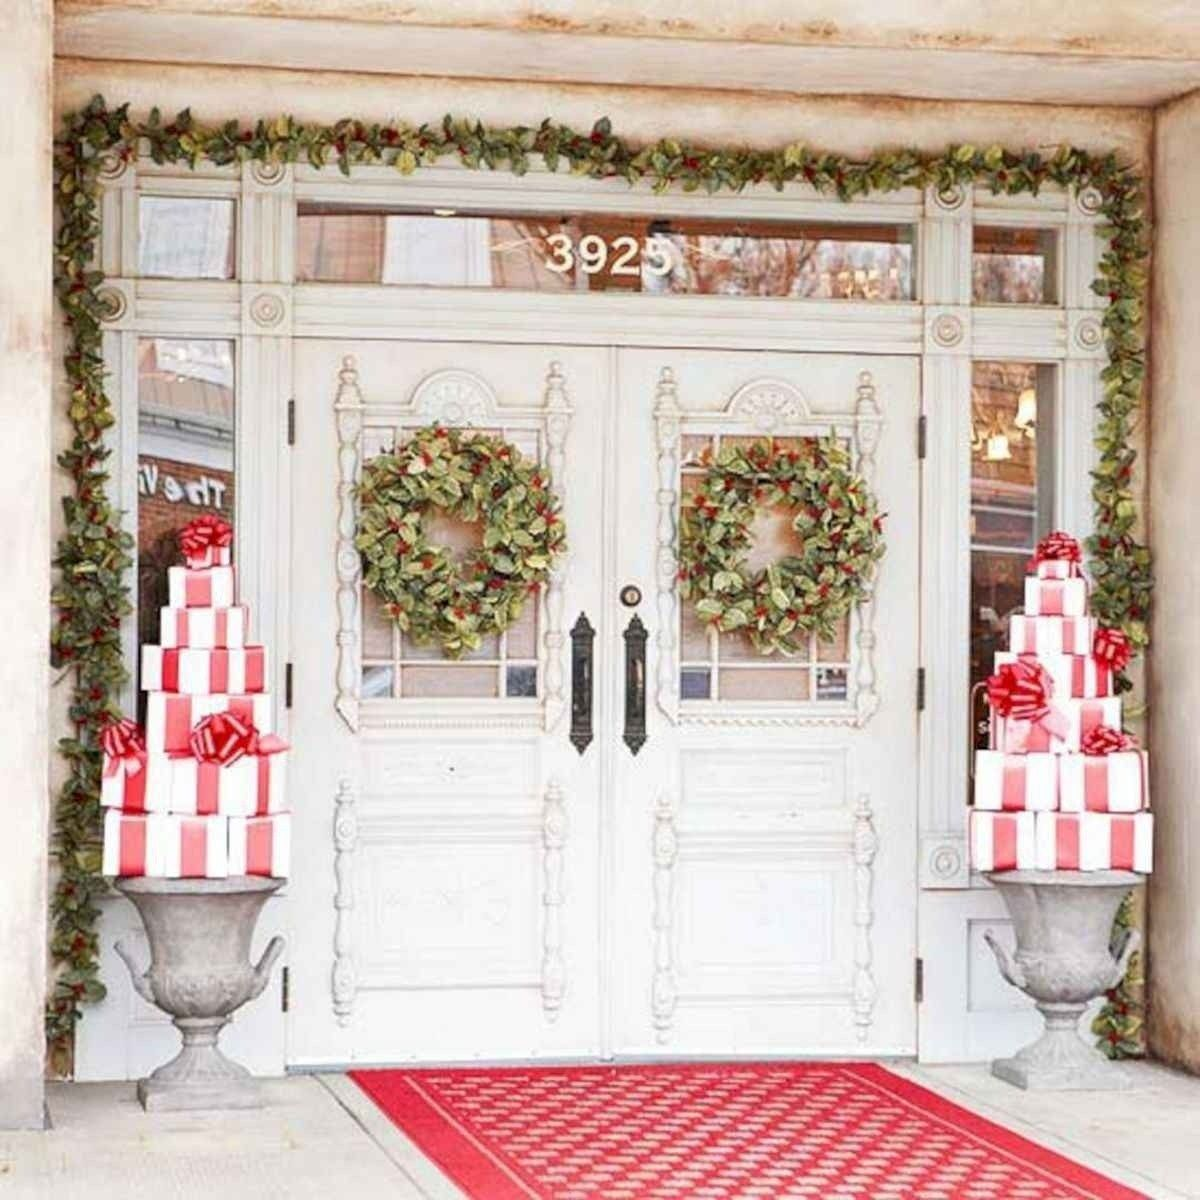 50 Awesome Christmas Front Porch Decor Ideas And Design Front Porch Christmas Decor Christmas Front Doors Outdoor Christmas